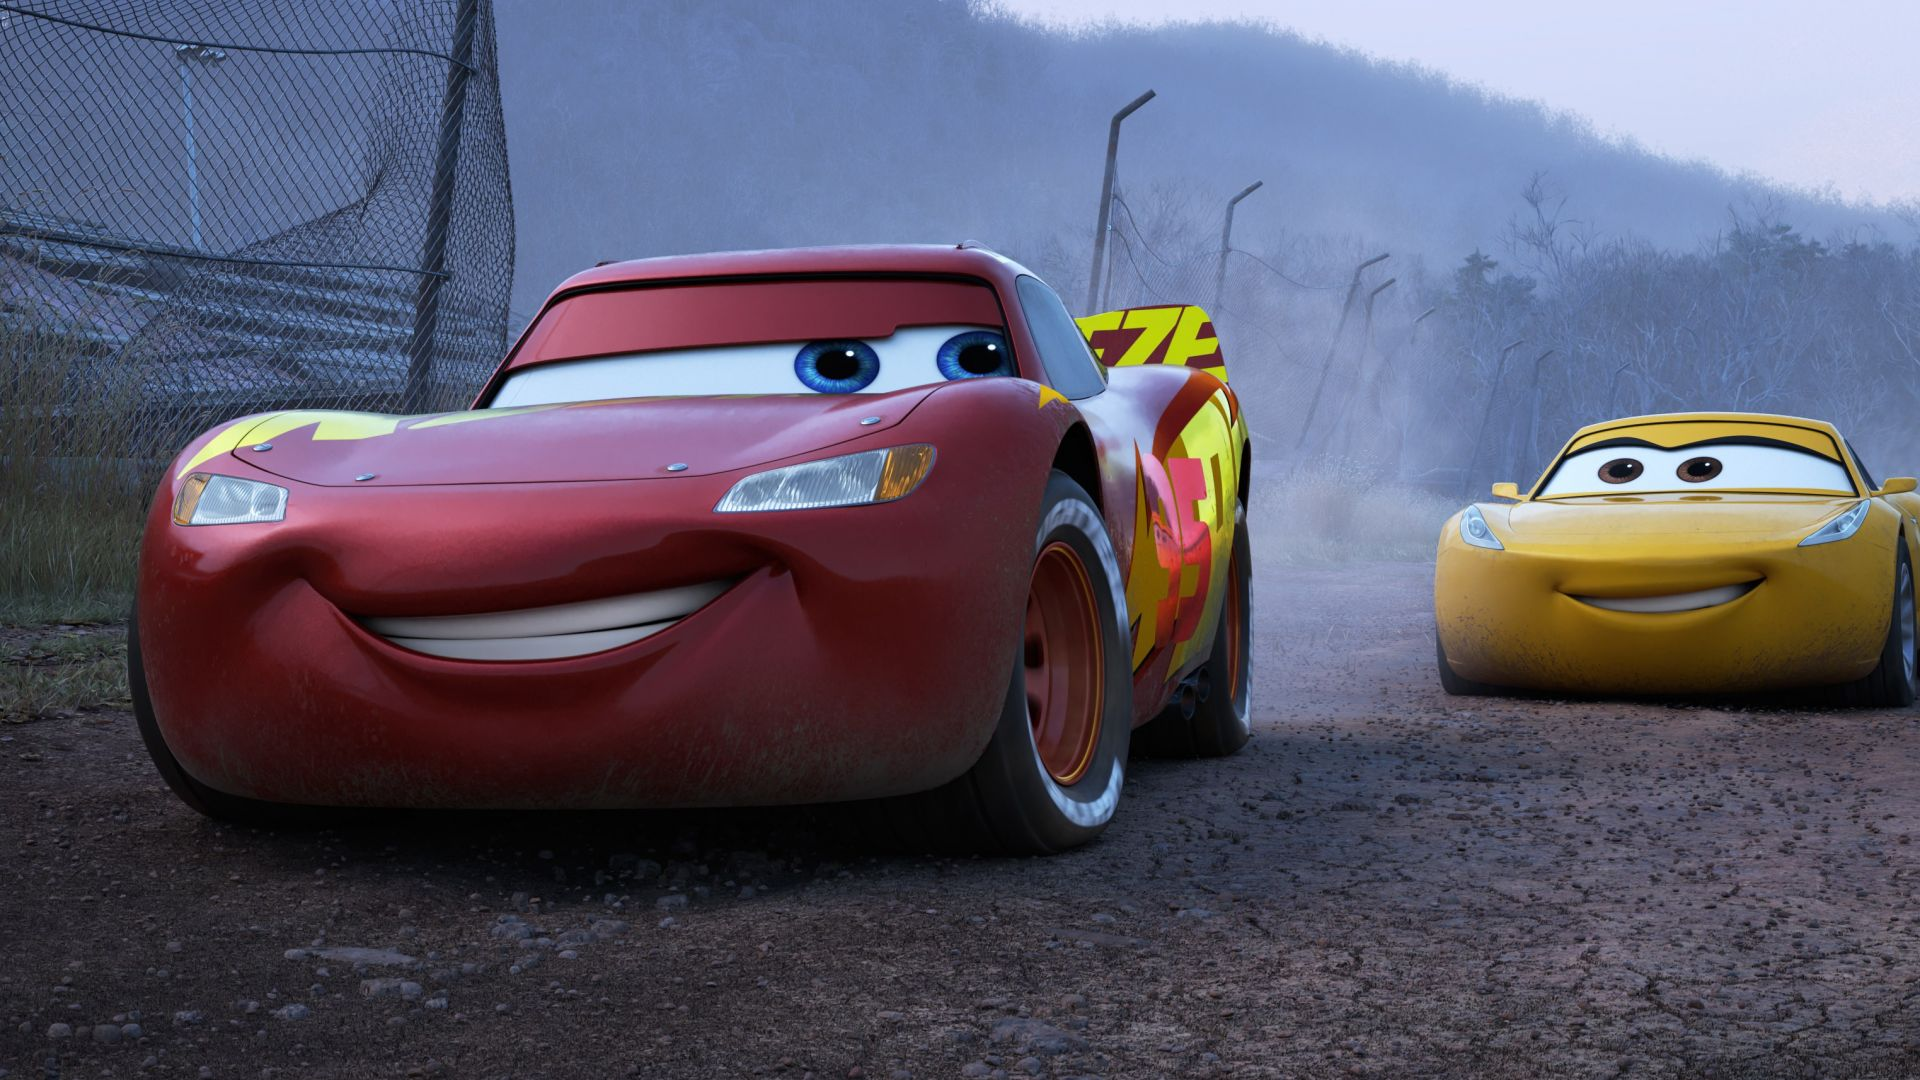 Disney Cars Disney cars the movie pictures